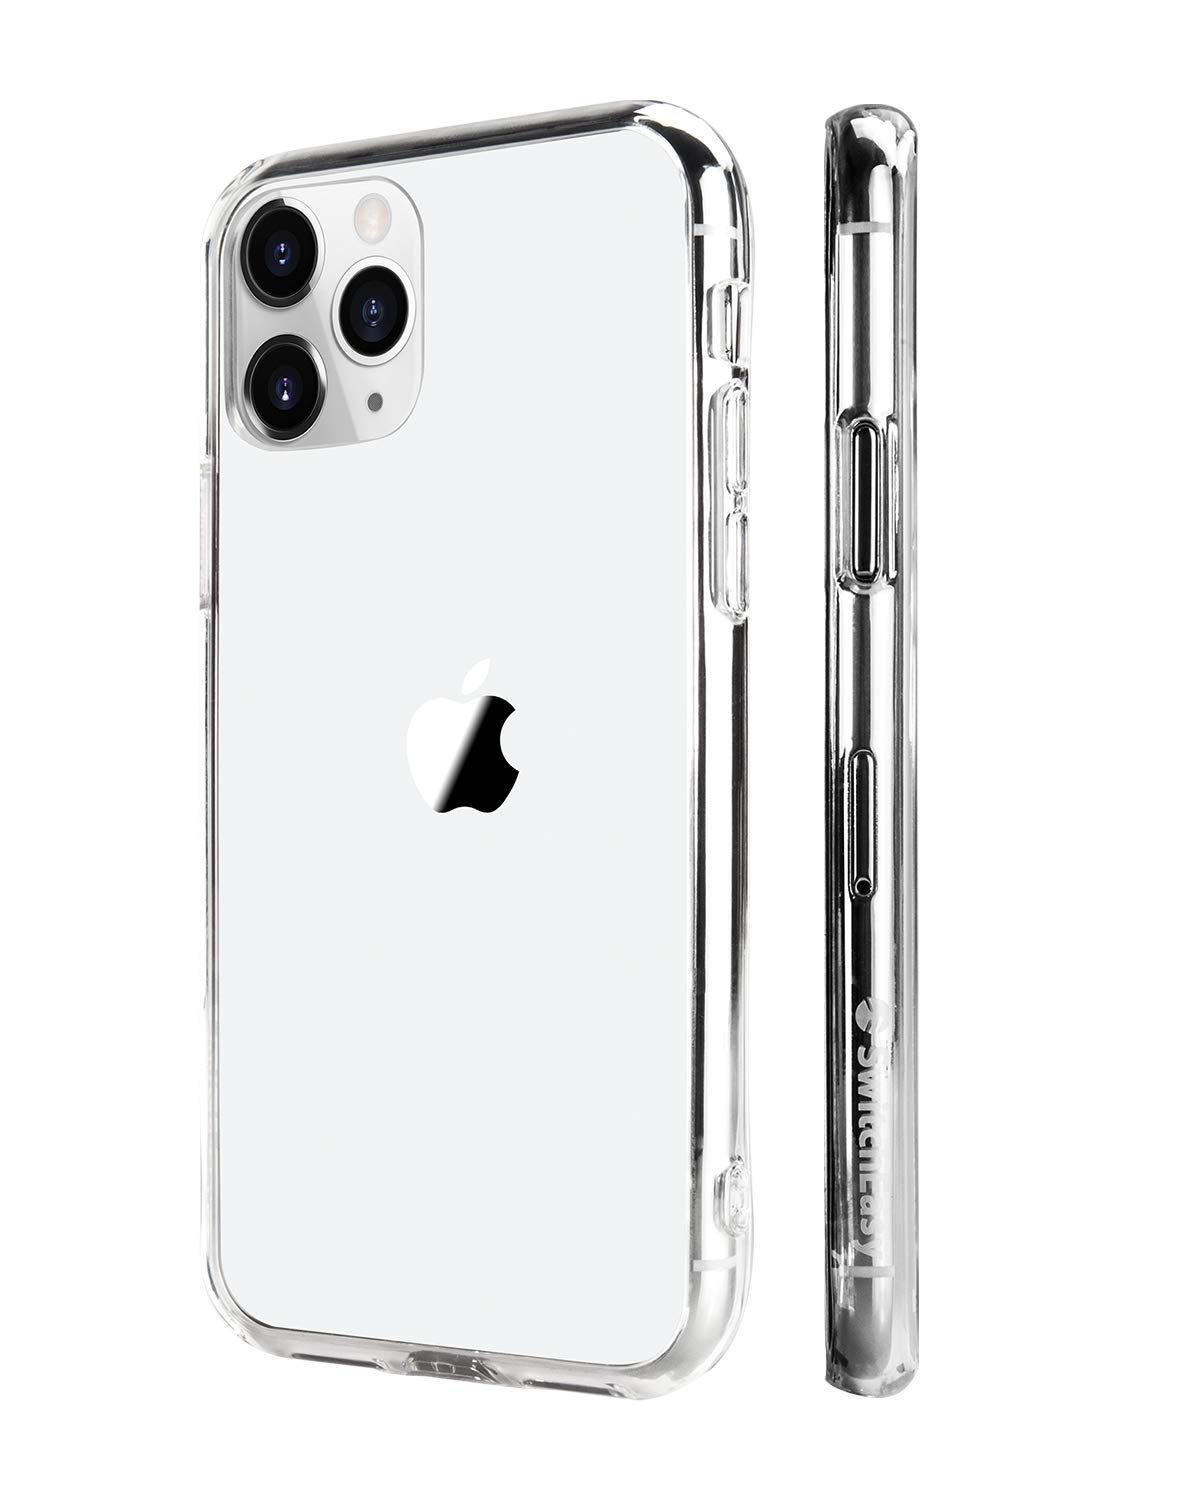 """iPhone 11 Pro Max Clear Case, SwitchEasy Crush Clear Case for 6.5 inch iPhone with Soft Bumper + Hard Back Cover, Military Drop Protection & Scratch Resistant (Ultra Clear, 2019 iPhone 6.5"""")"""